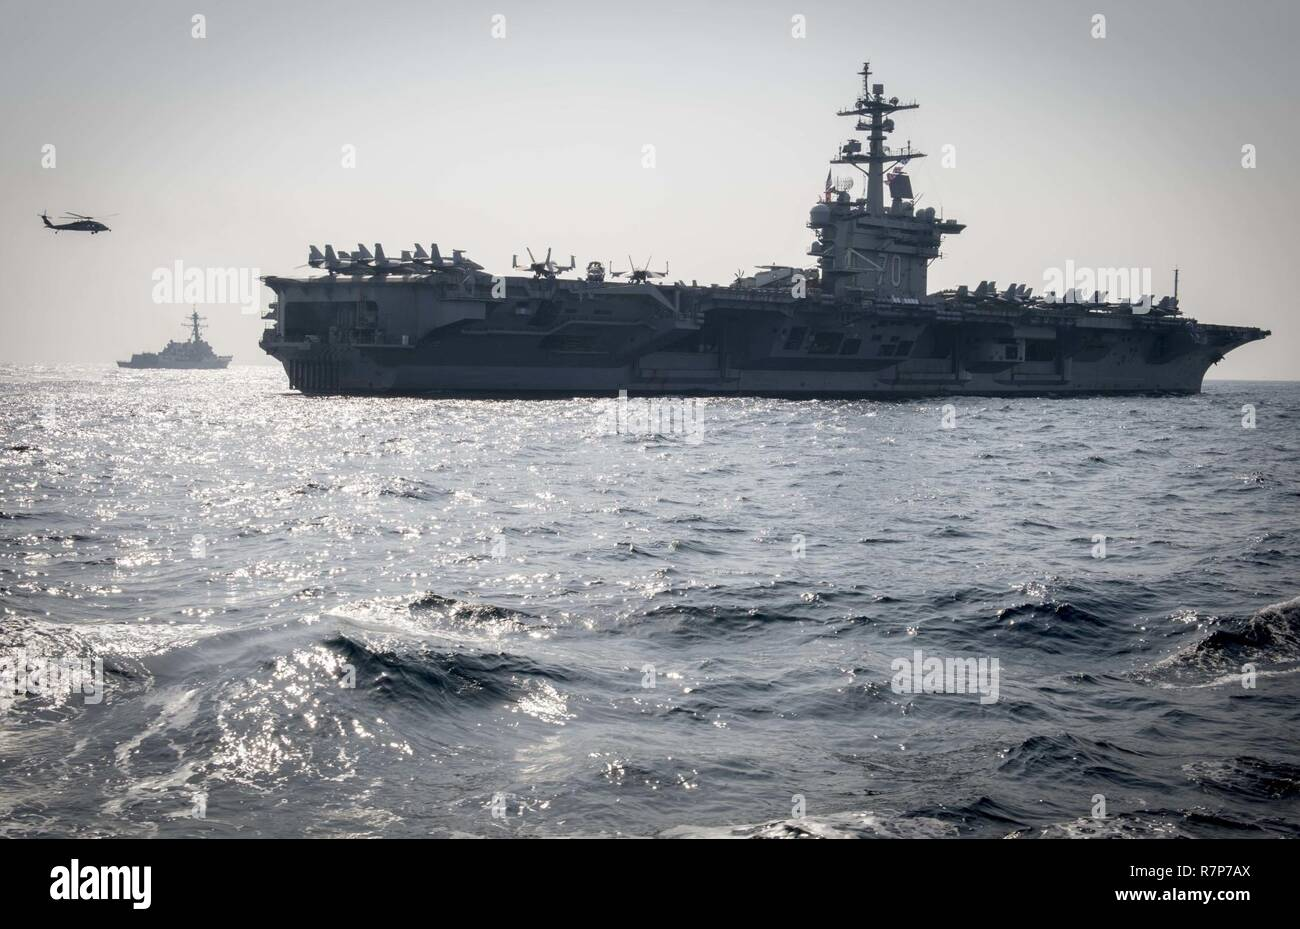 WATERS EAST OF THE KOREAN PENINSULA (March 22, 2017) The Nimitz-class aircraft carrier USS Carl Vinson (CVN 70) and the Arleigh Burke-class guided-missile destroyer USS Wayne E. Meyer (DDG 108) steam ahead of USS Stethem (DDG 63) during a surface maenuvers exercise with several other U.S. and Republic of Korea Navy ships and submarines during Foal Eagle (FE) 17. FE 17 is a series of annual training events designed to increase readiness to defend the ROK, protect the region, and maintain stability in the Korean Peninsula. - Stock Image